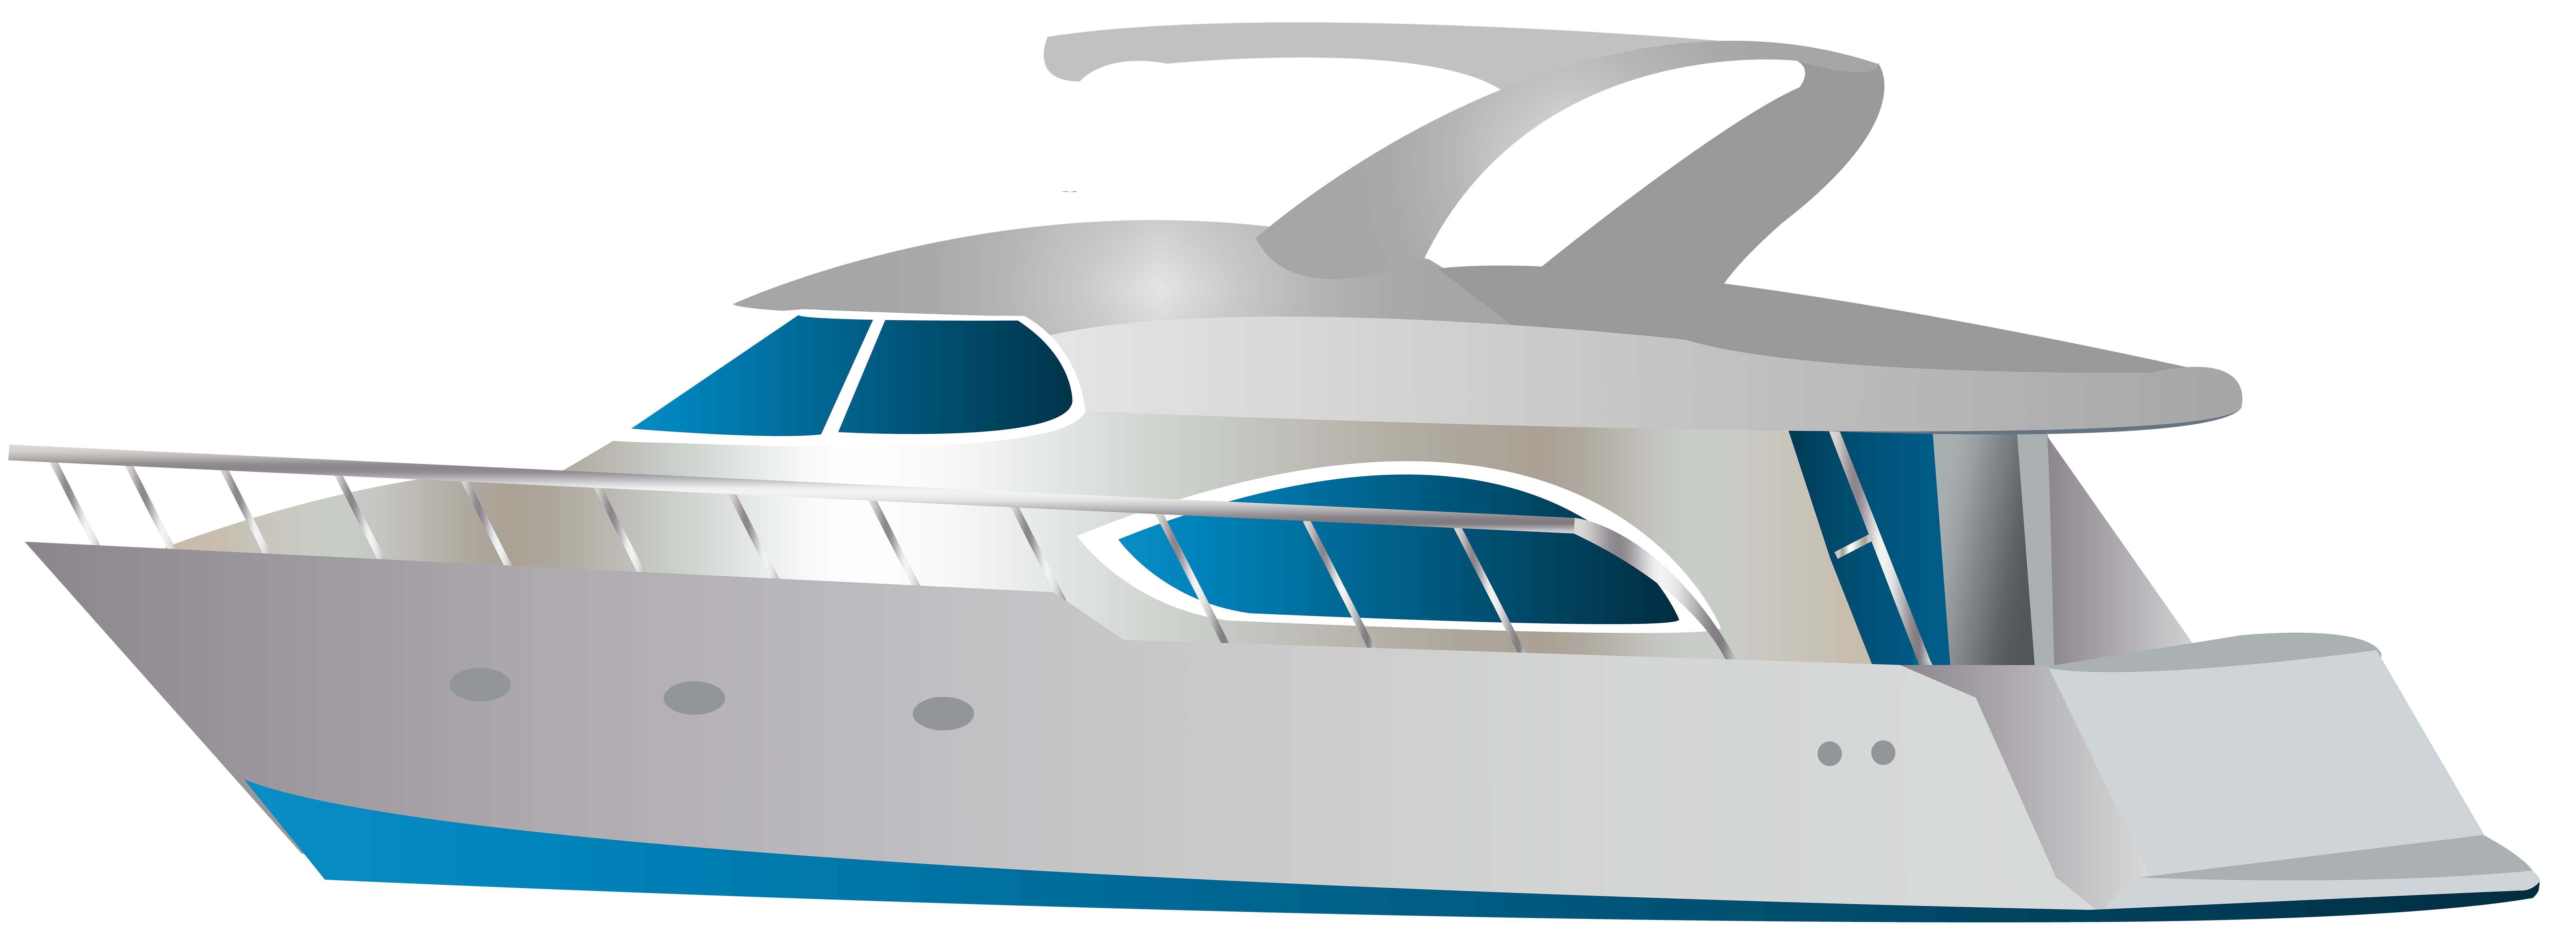 vector black and white Speed boat png clip. Yacht clipart transparent background.